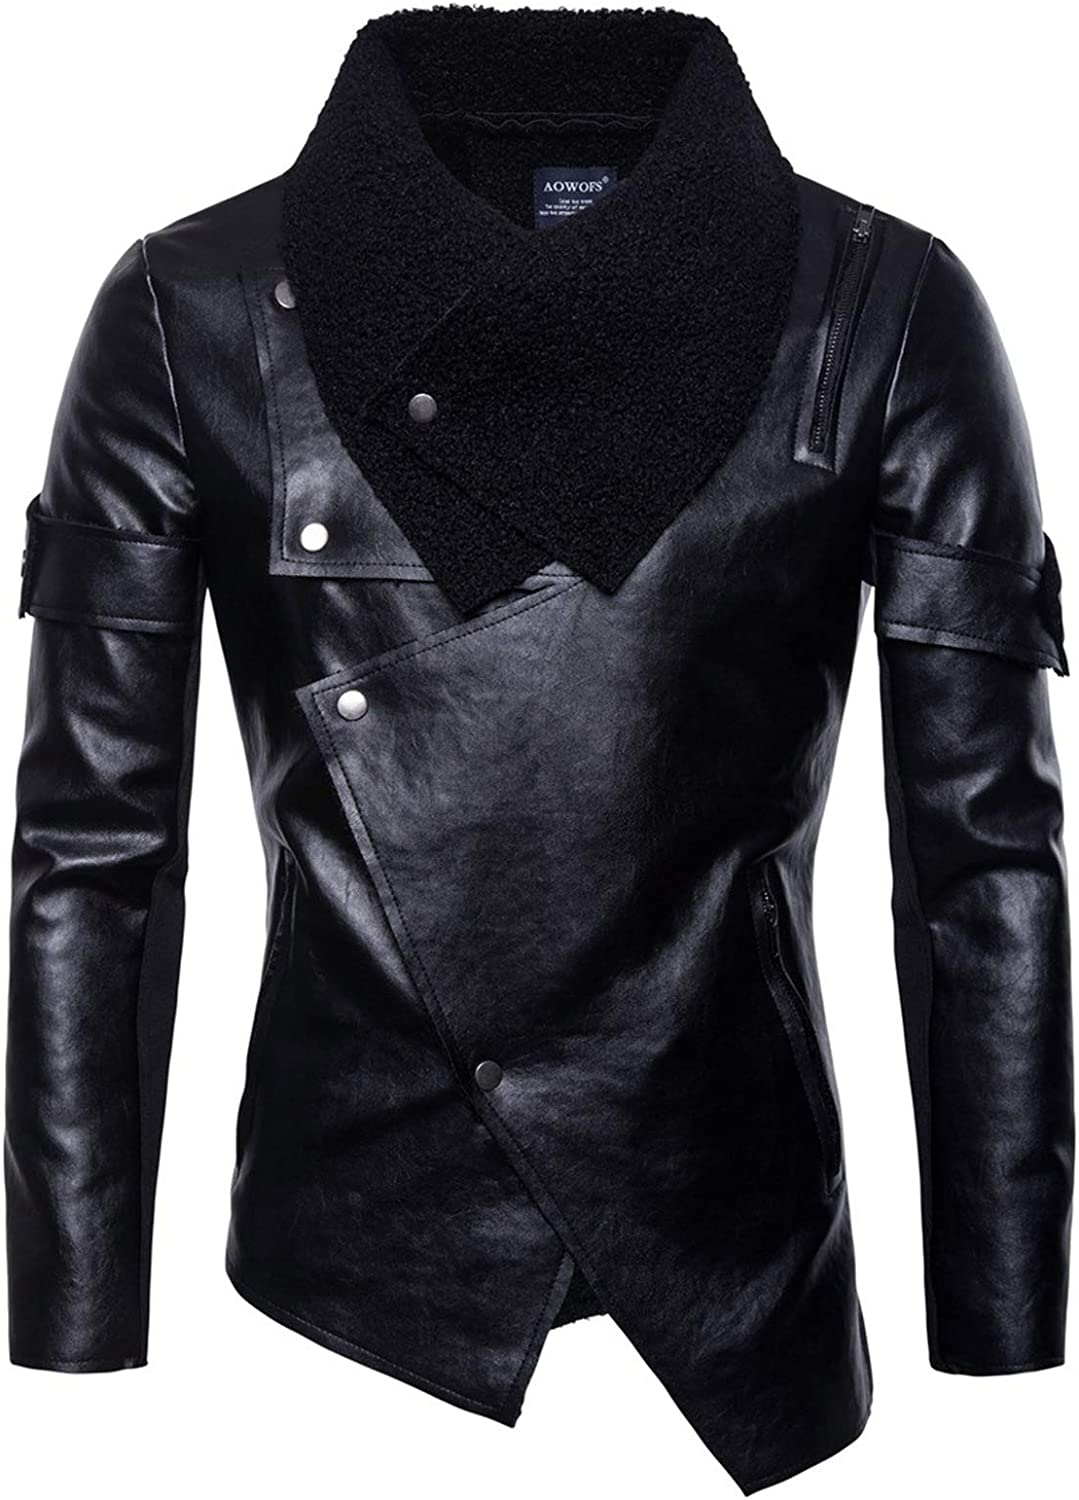 Men's Motorcycle Leather Jackets,Irregular Personality Punk Leather Jacket,for Casual Daily Wear for Teenagers